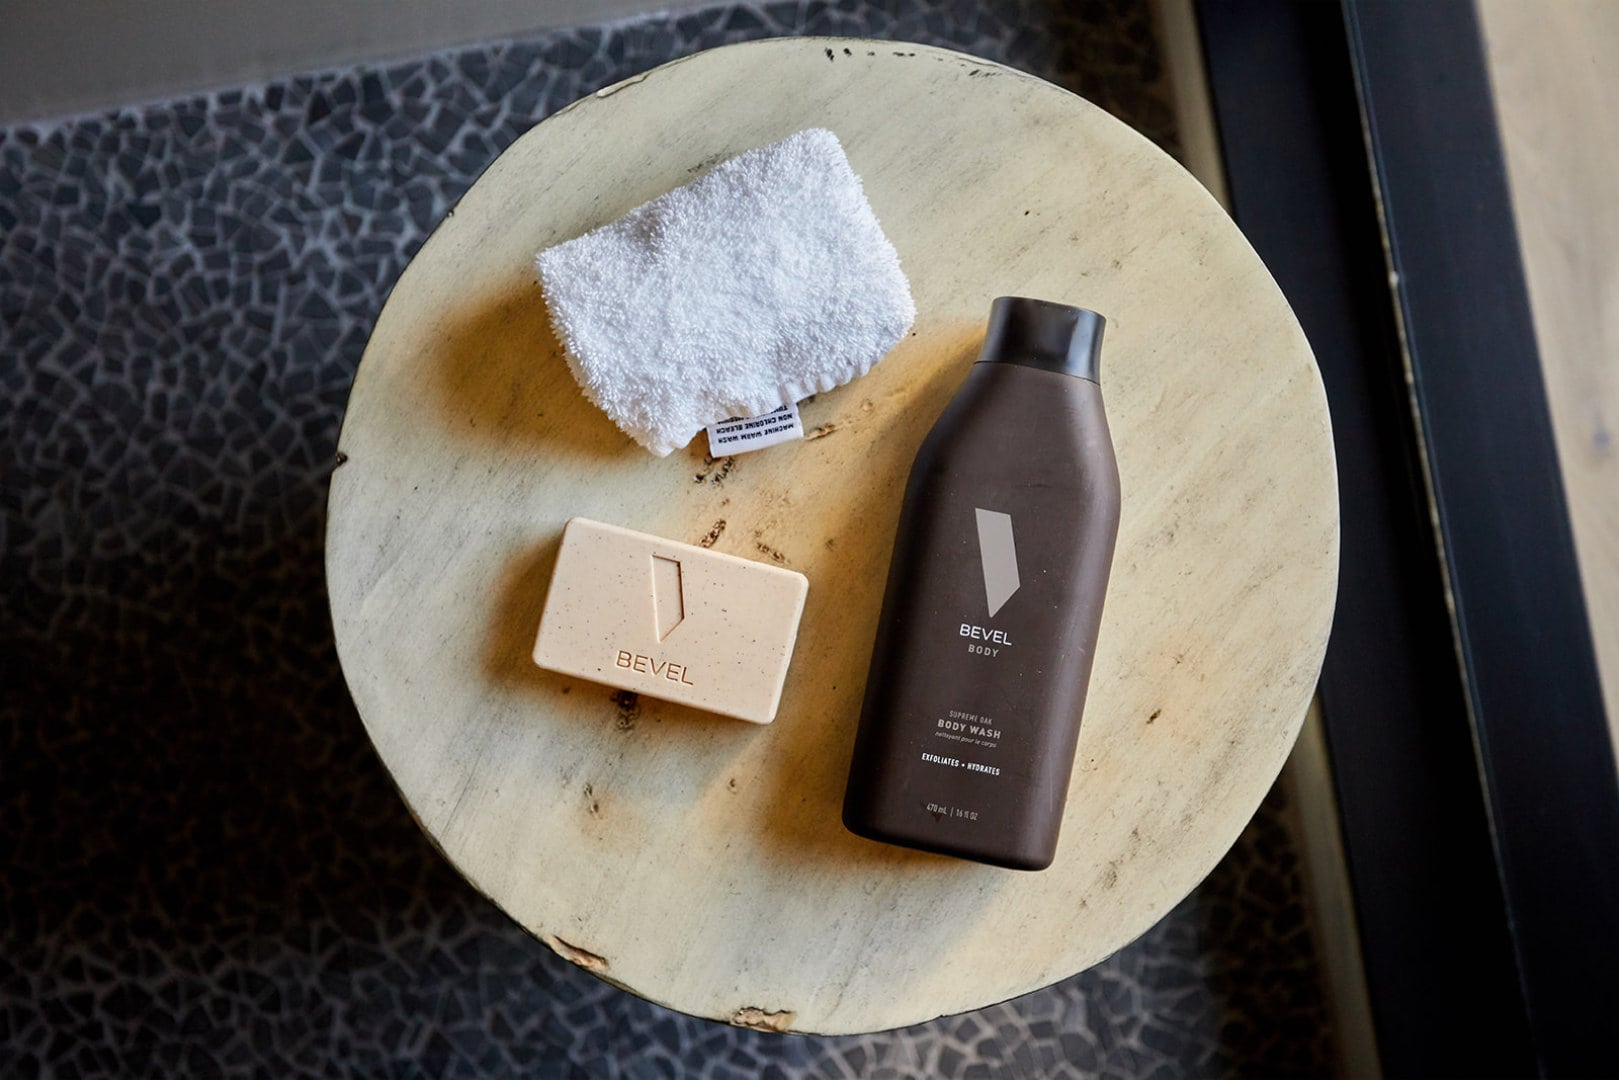 Bevel bar soap & body wash